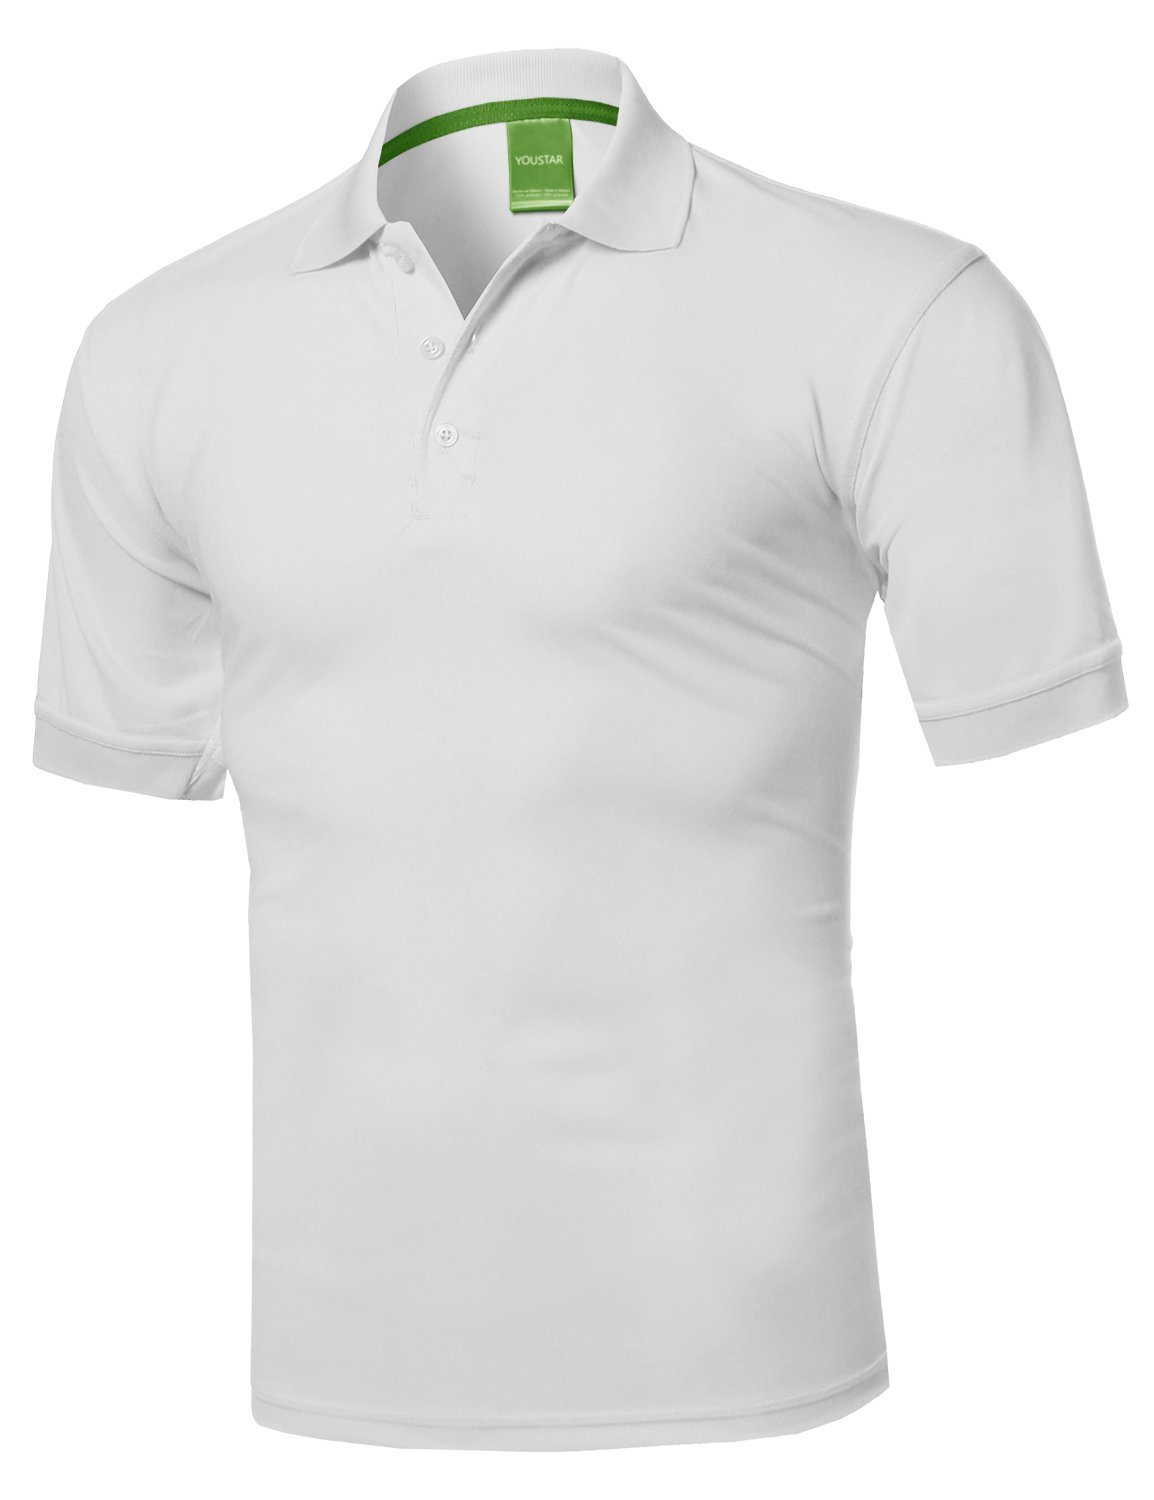 Solid Dri-Fit Active Athletic Golf Short Sleeves